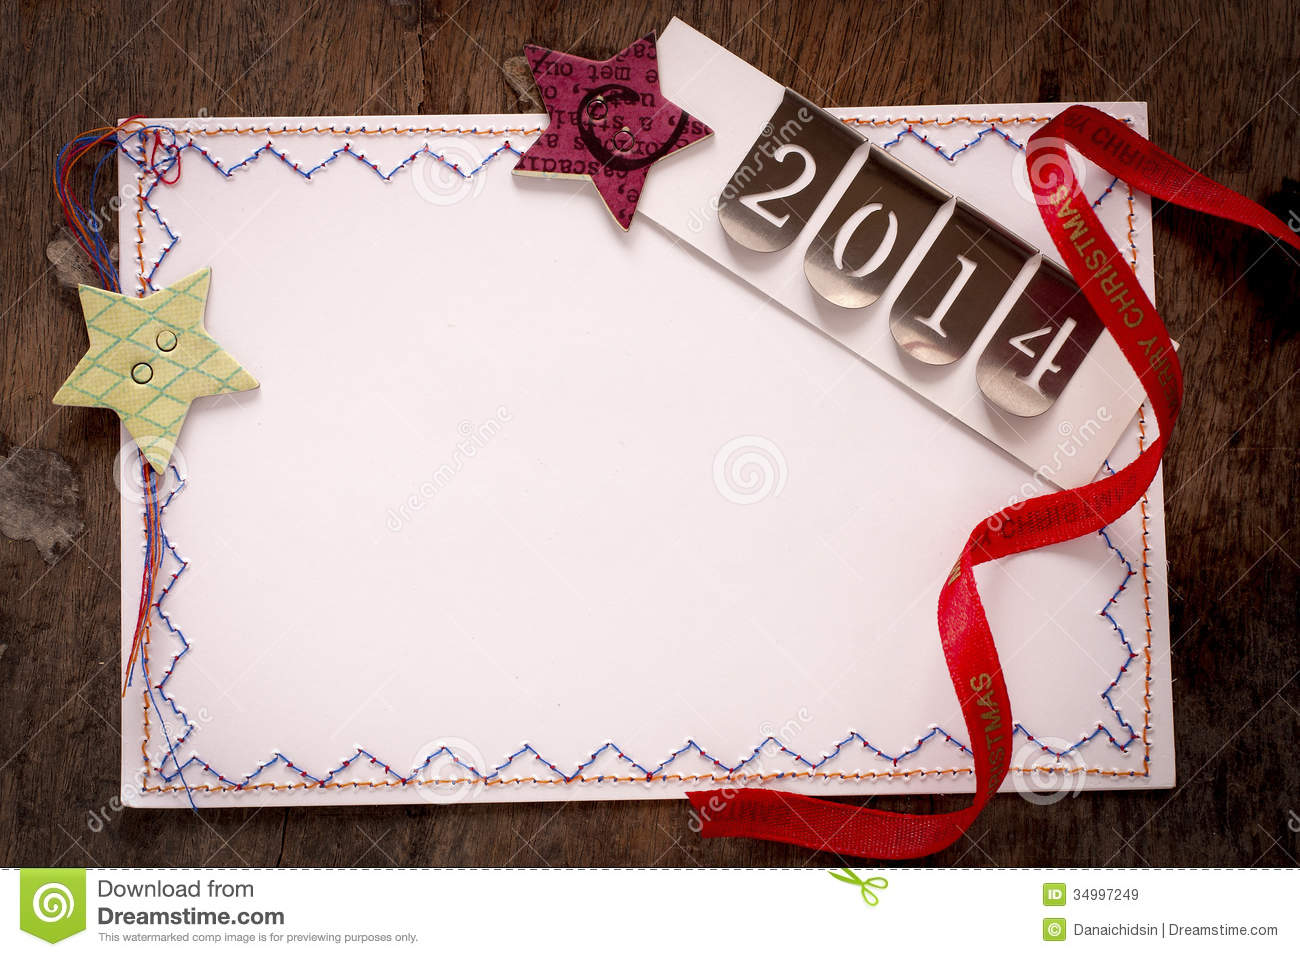 New year and christmas greeting cards stock image image of new year and christmas greeting cards kristyandbryce Gallery